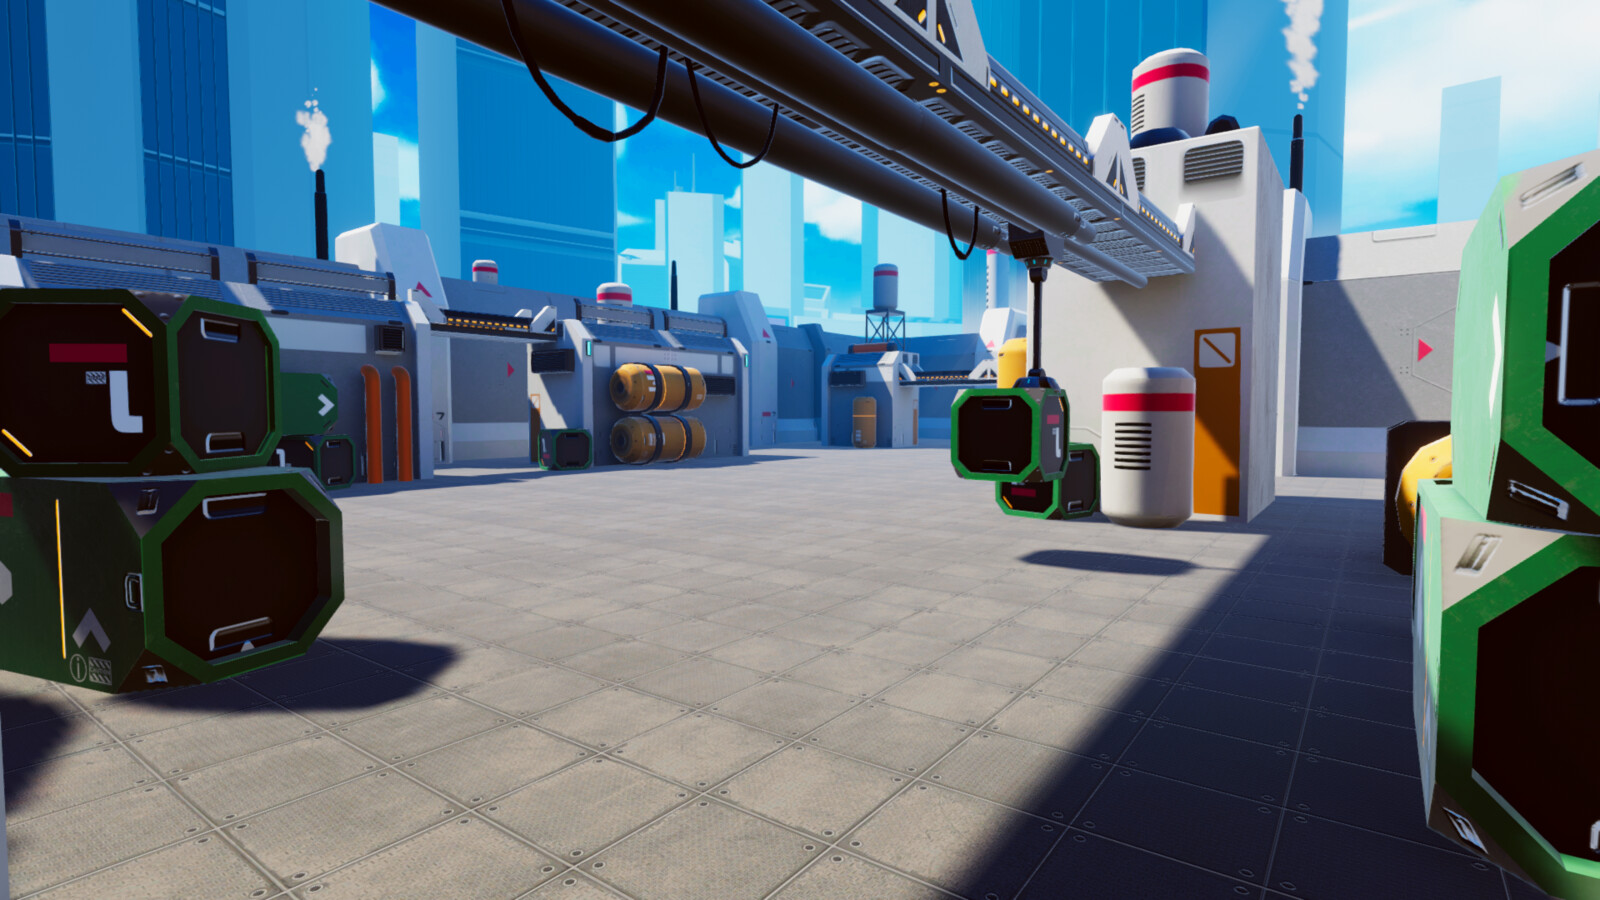 VR/Mobile stylized industrial complex